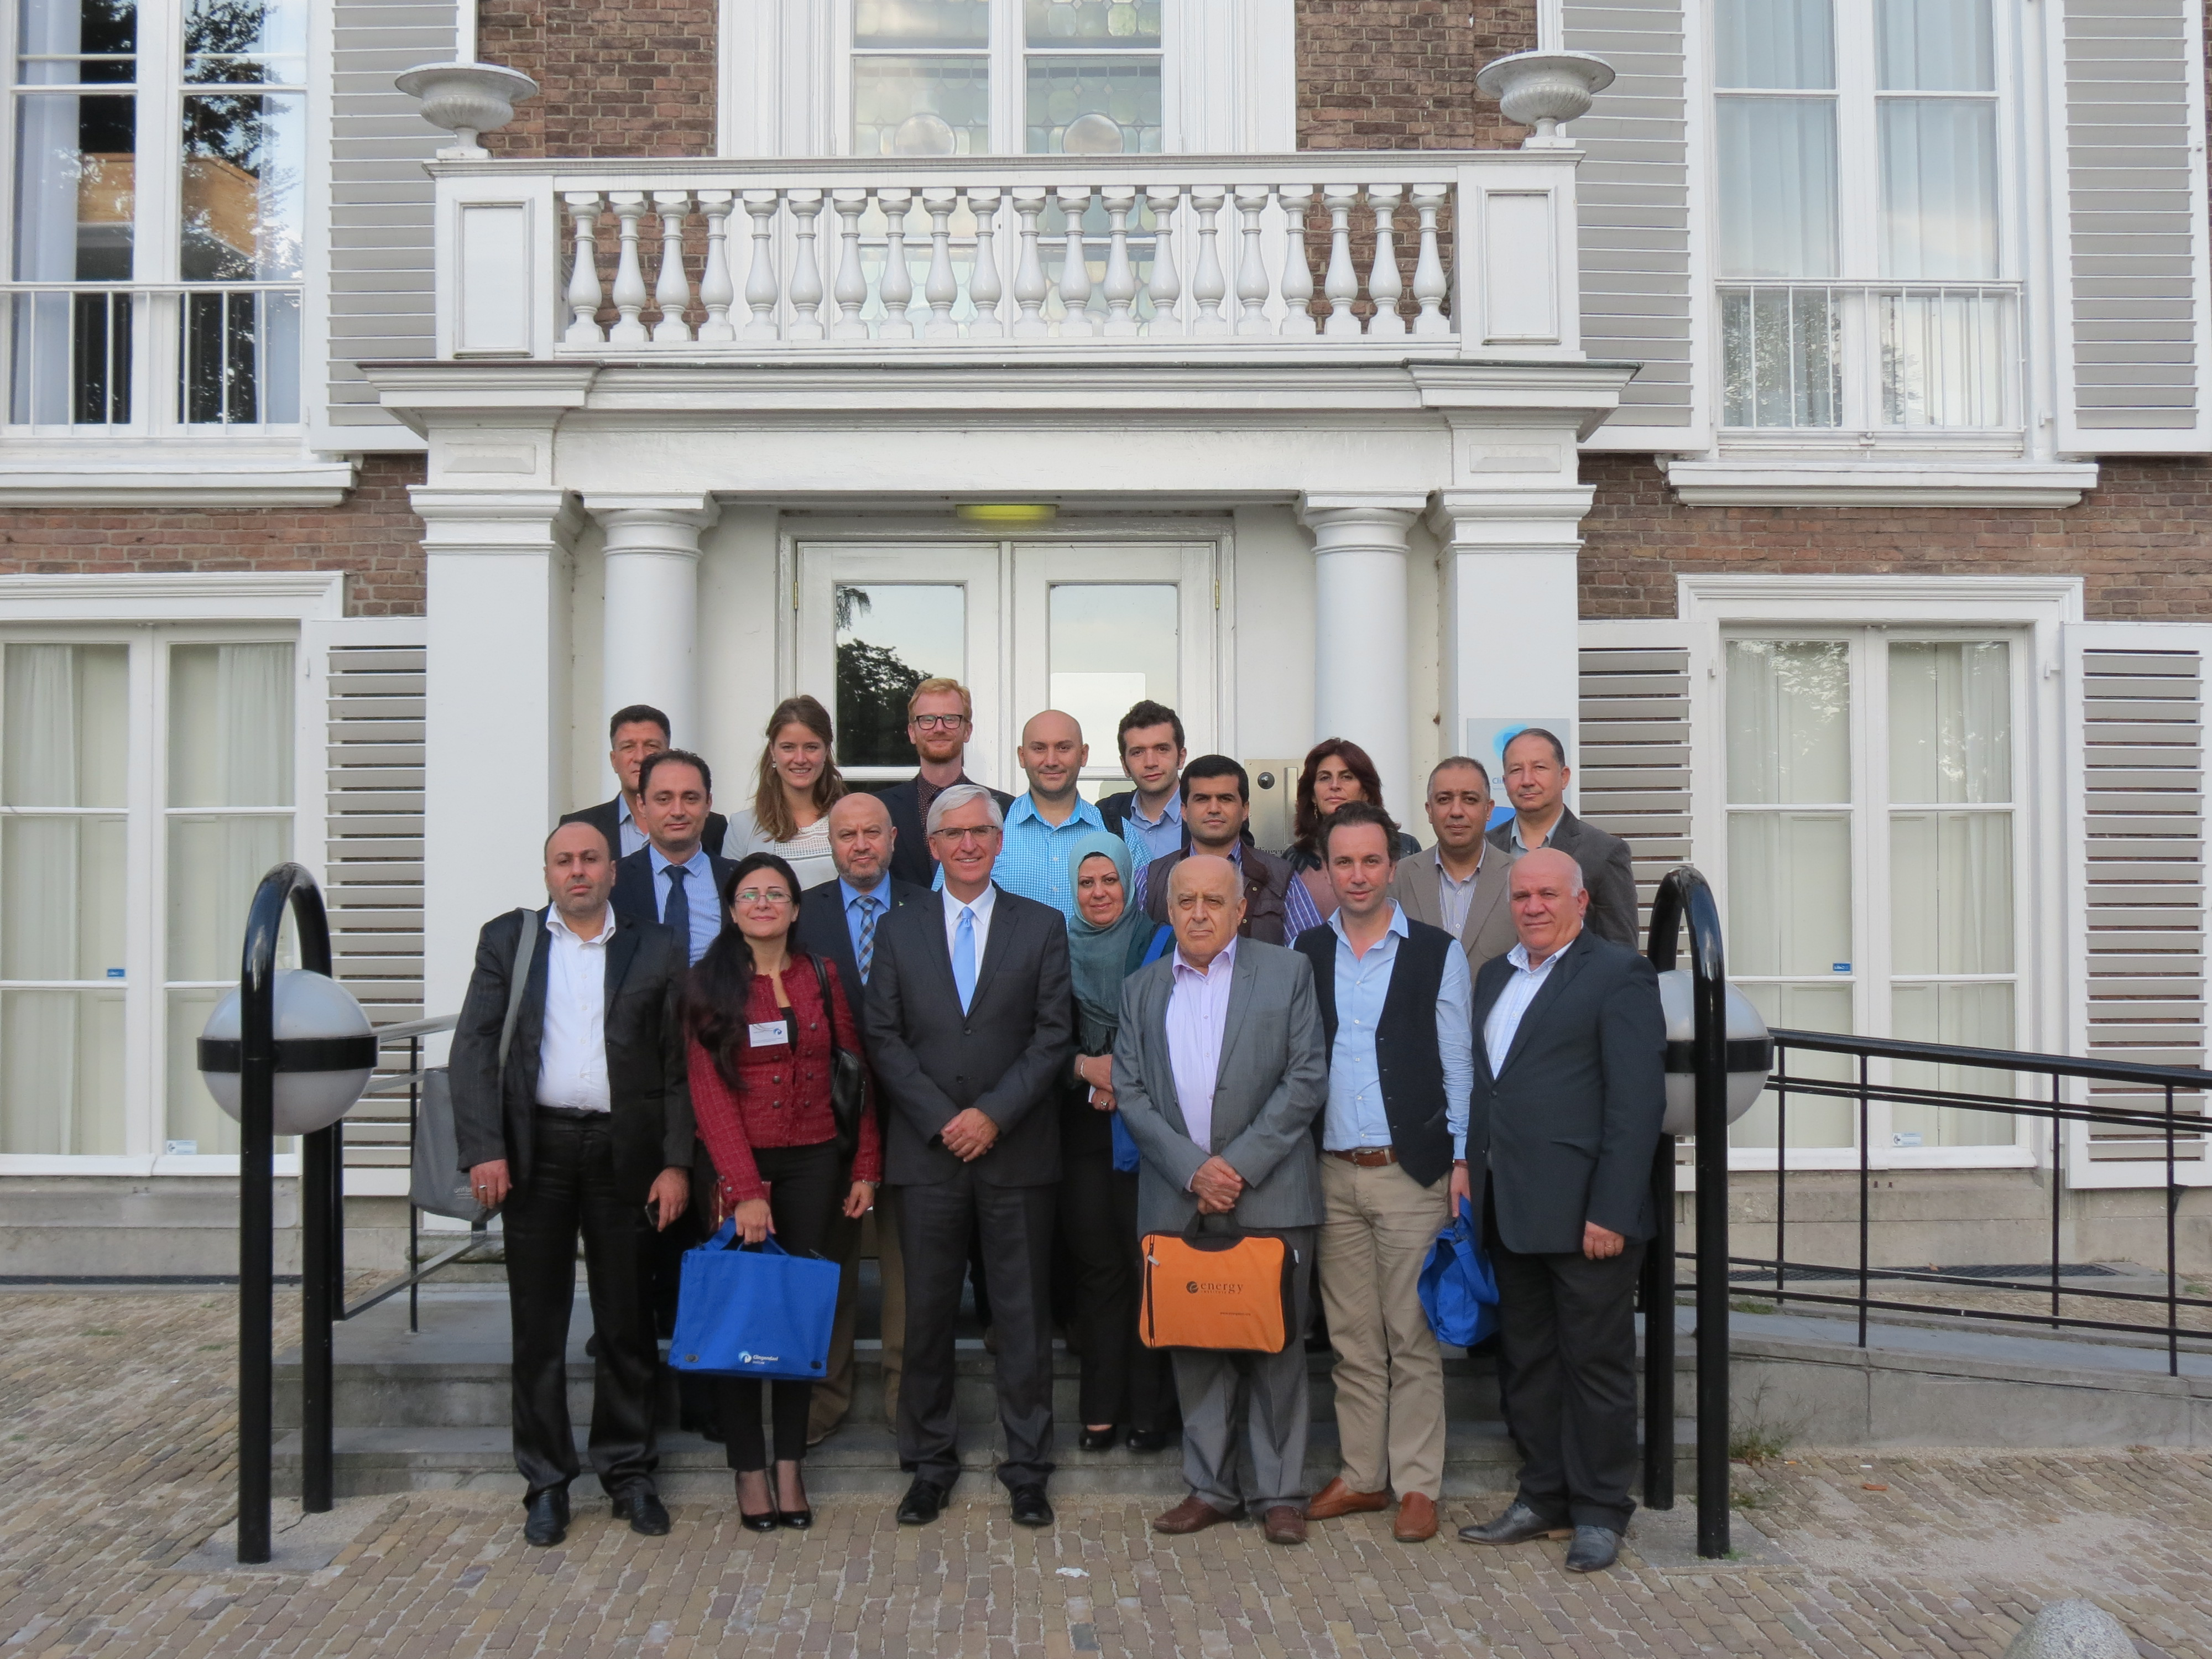 Participants together with Mr Ron Ton, Hans Wurzer and Mara van der Meer, in front of the Clingendael Institute